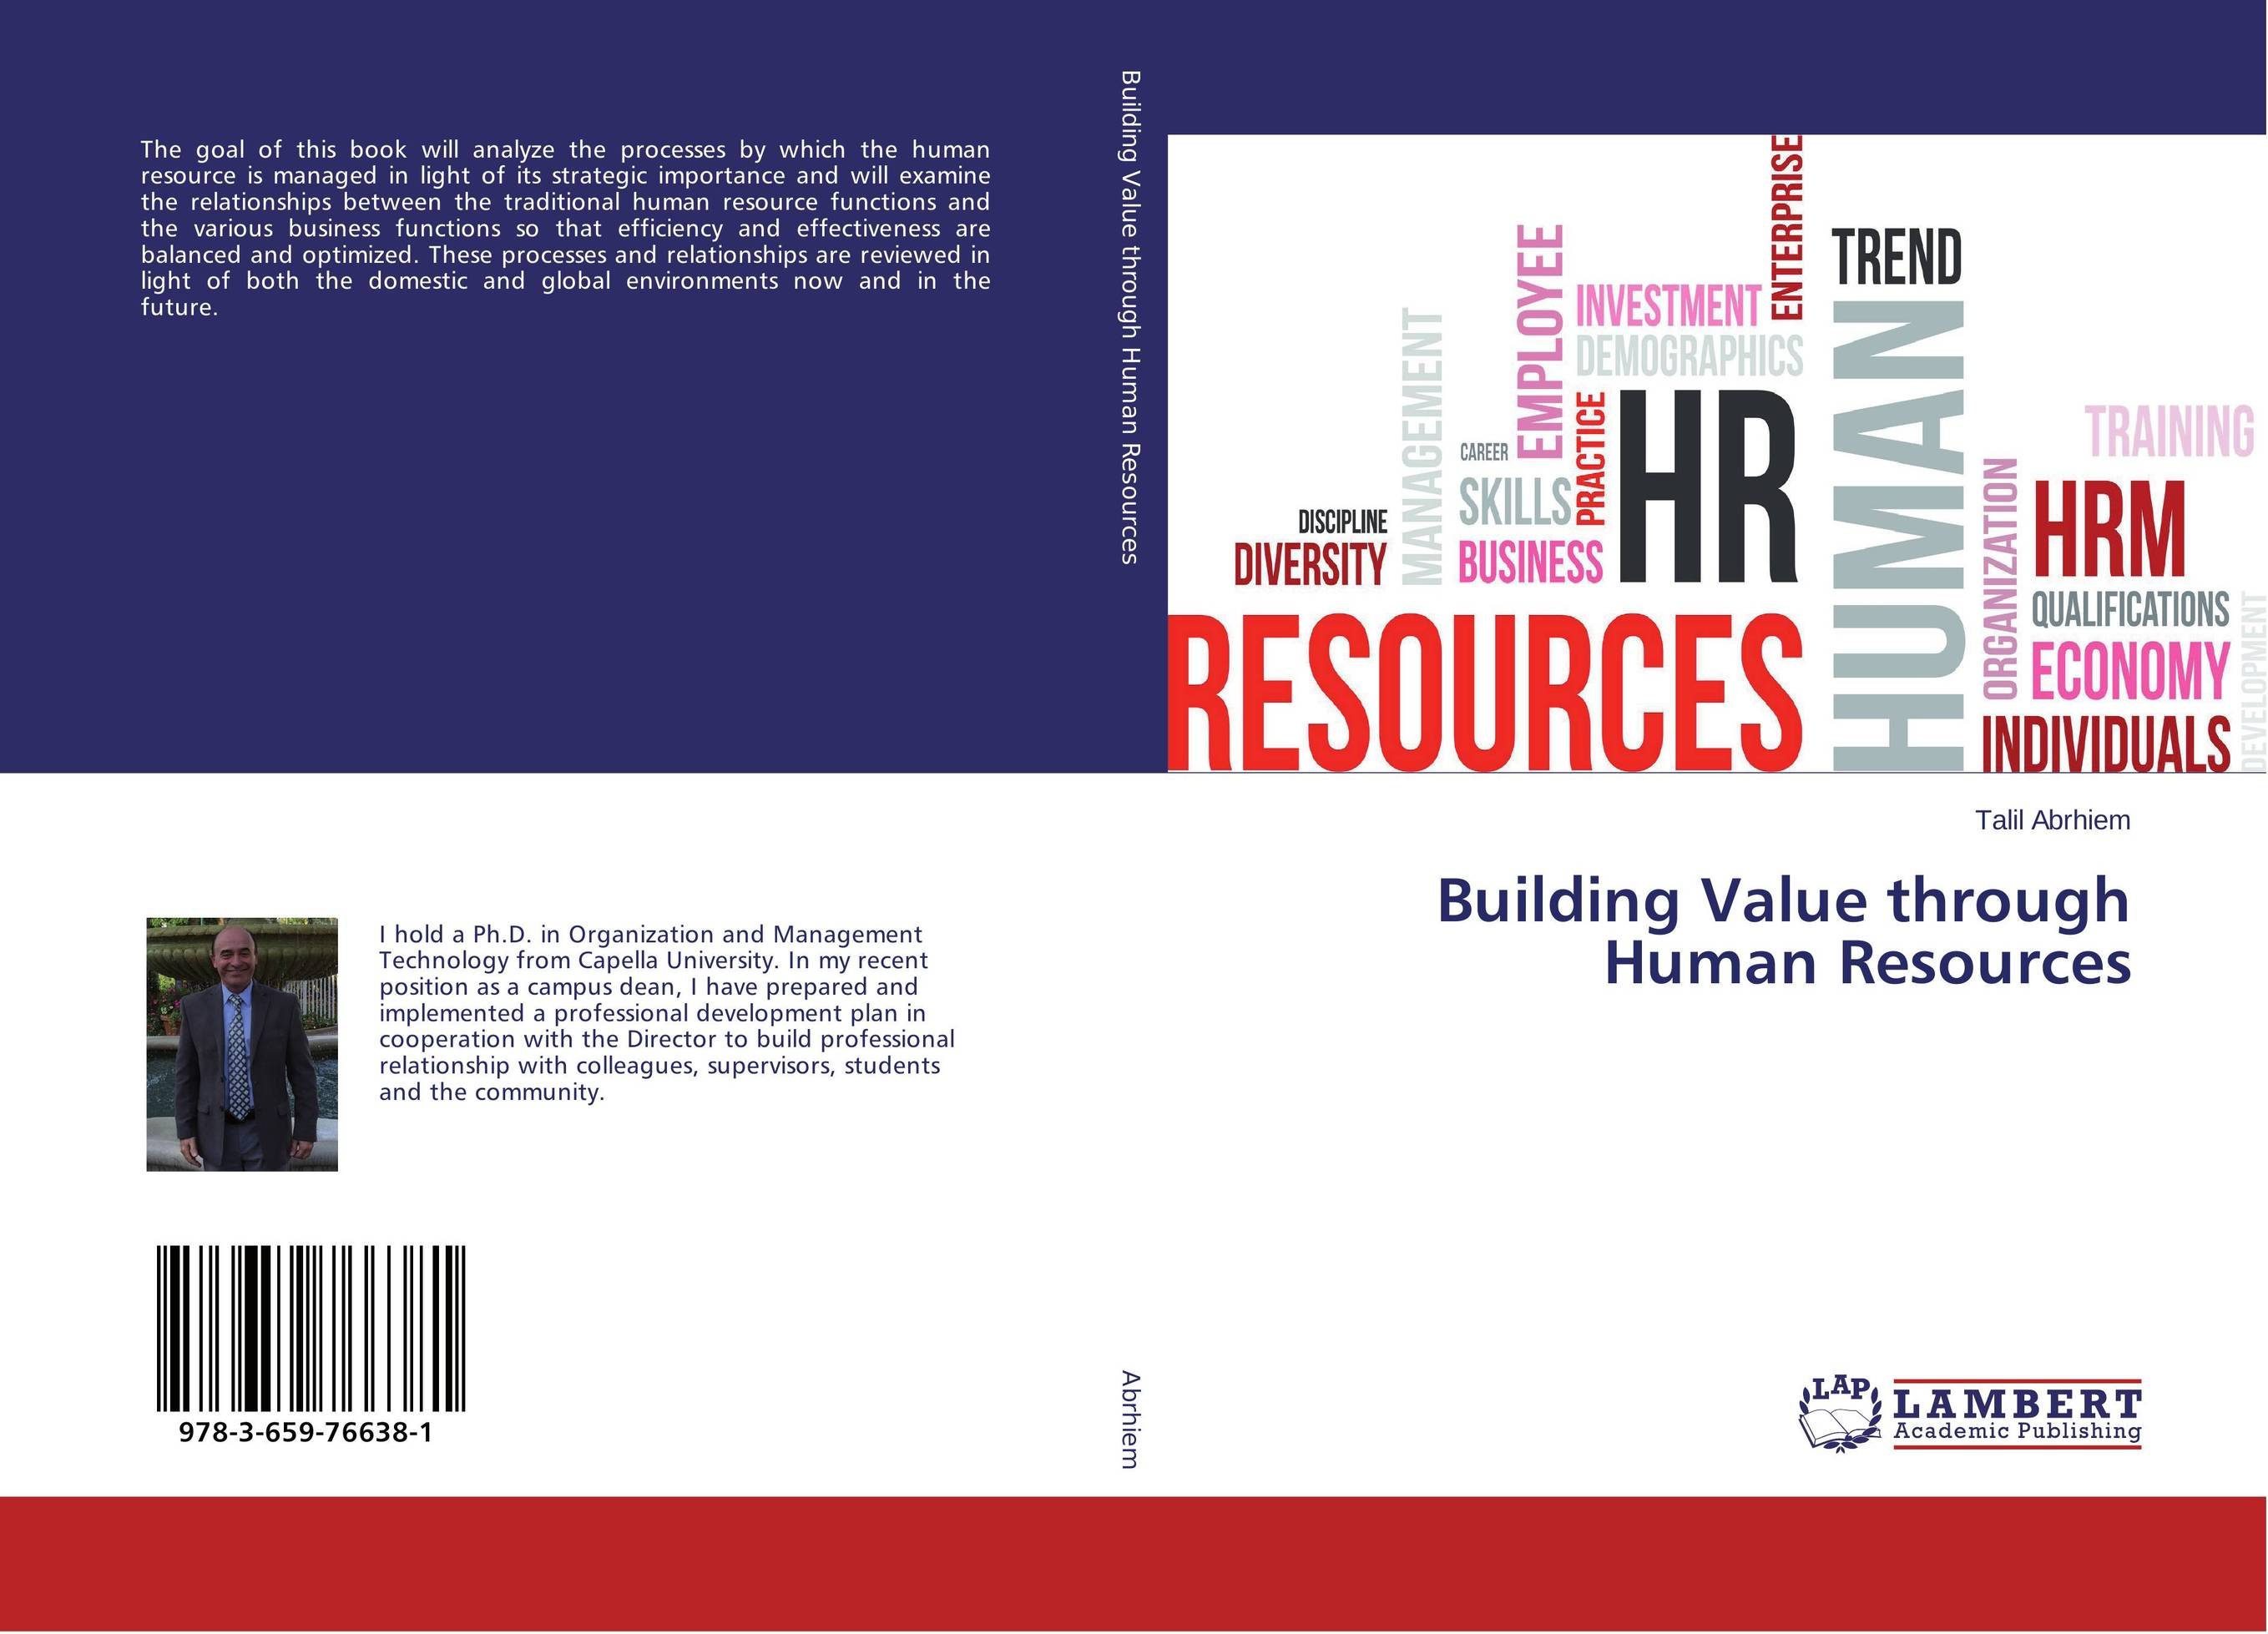 Building Value through Human Resources building value through human resources